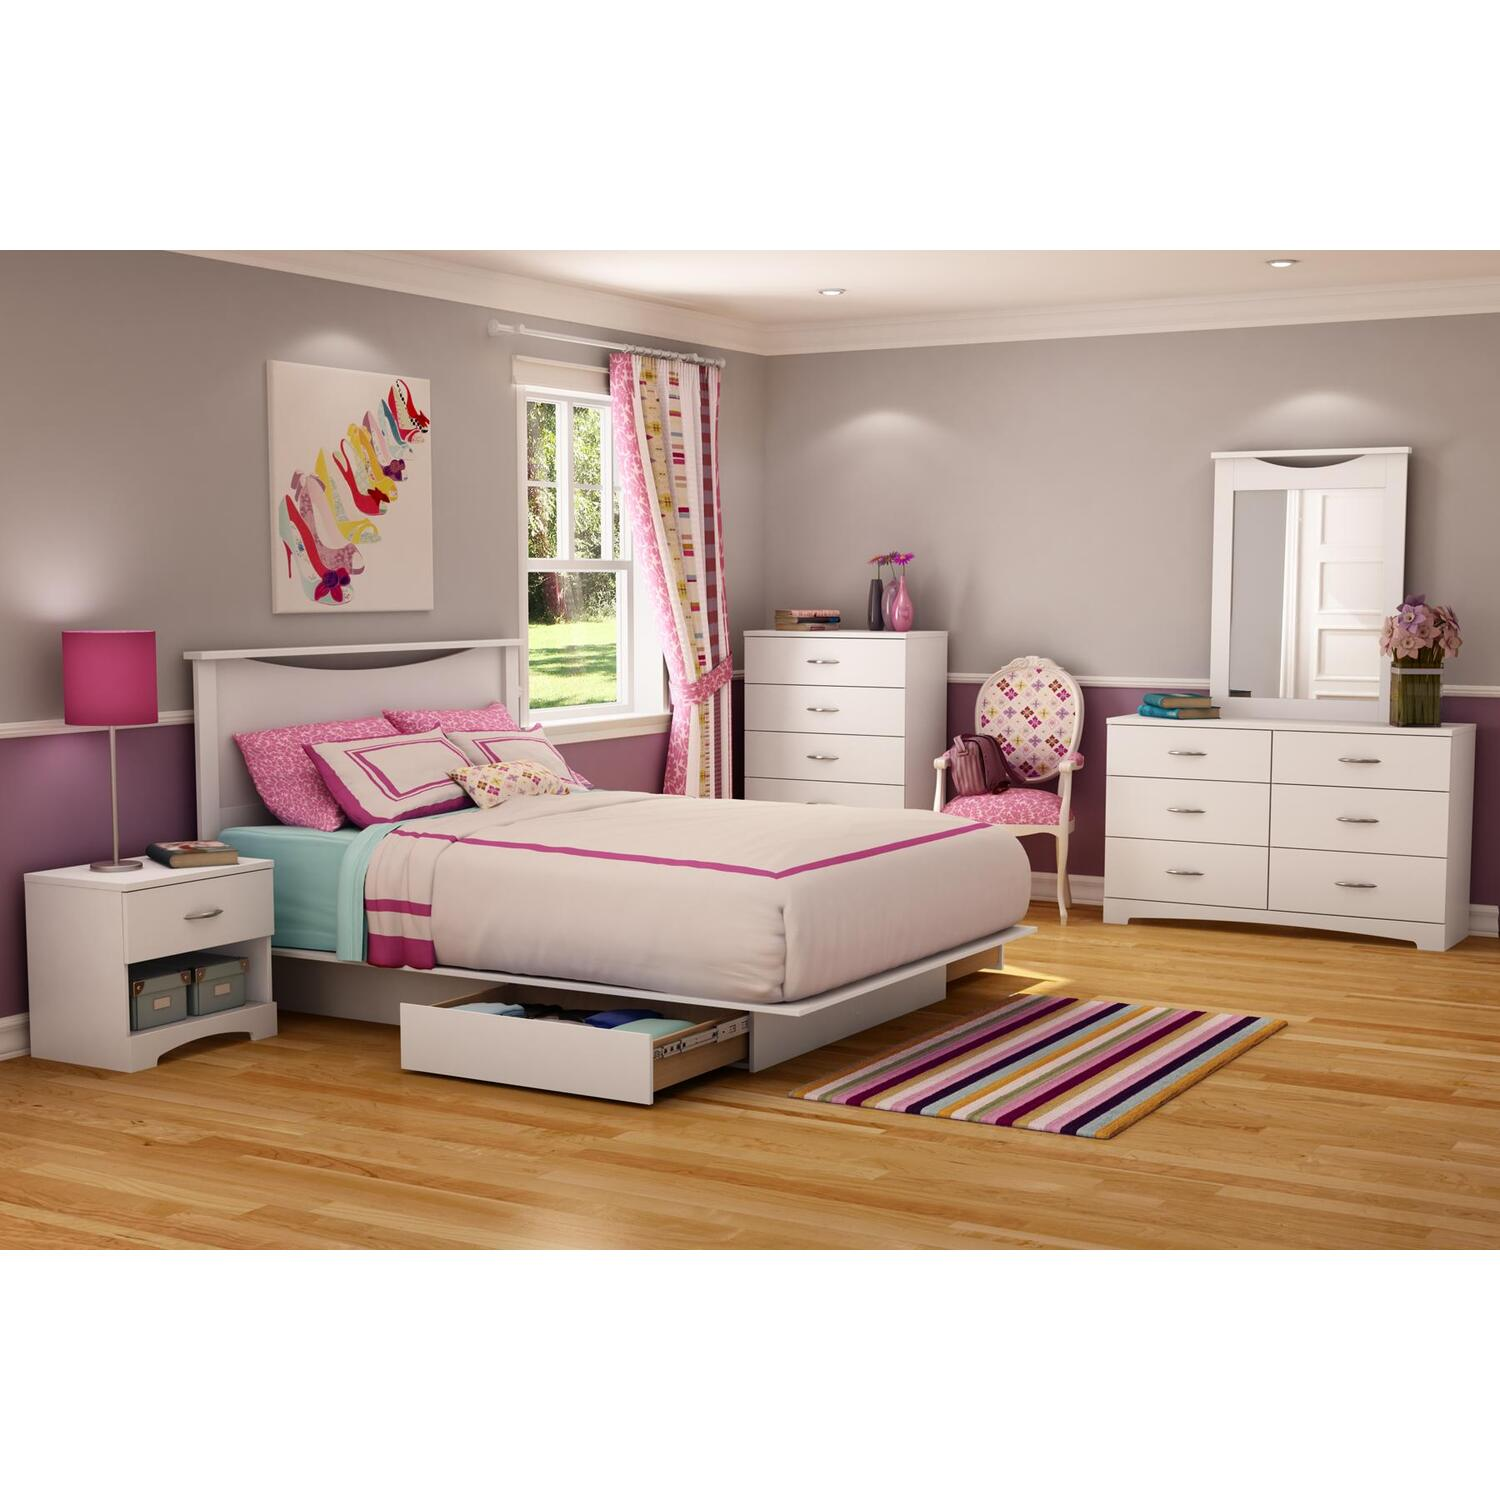 South Shore 3160FQ6PC Step e Full Queen 6 Piece Bedroom